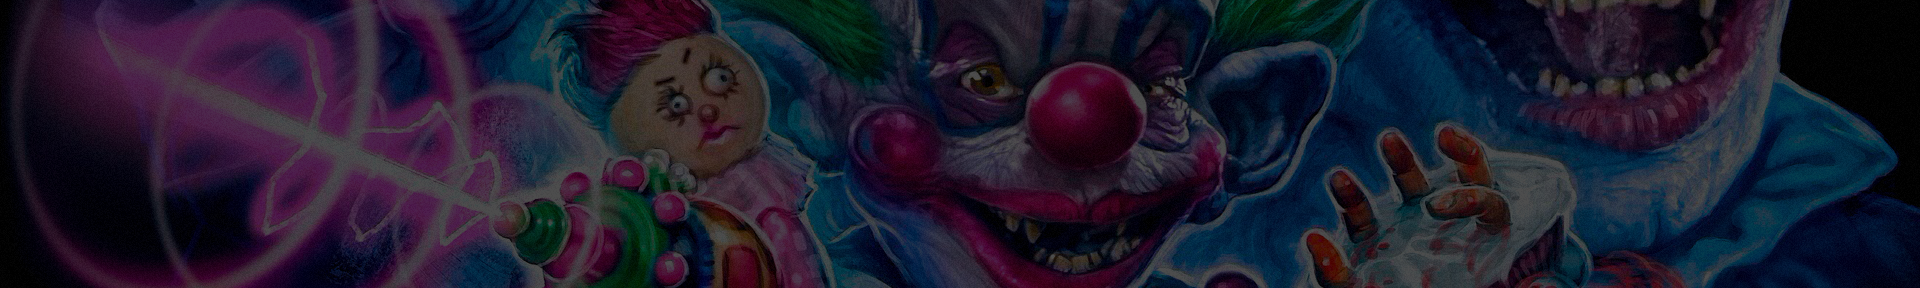 KILLER KLOWNS FROM OUTER SPACE part 1!